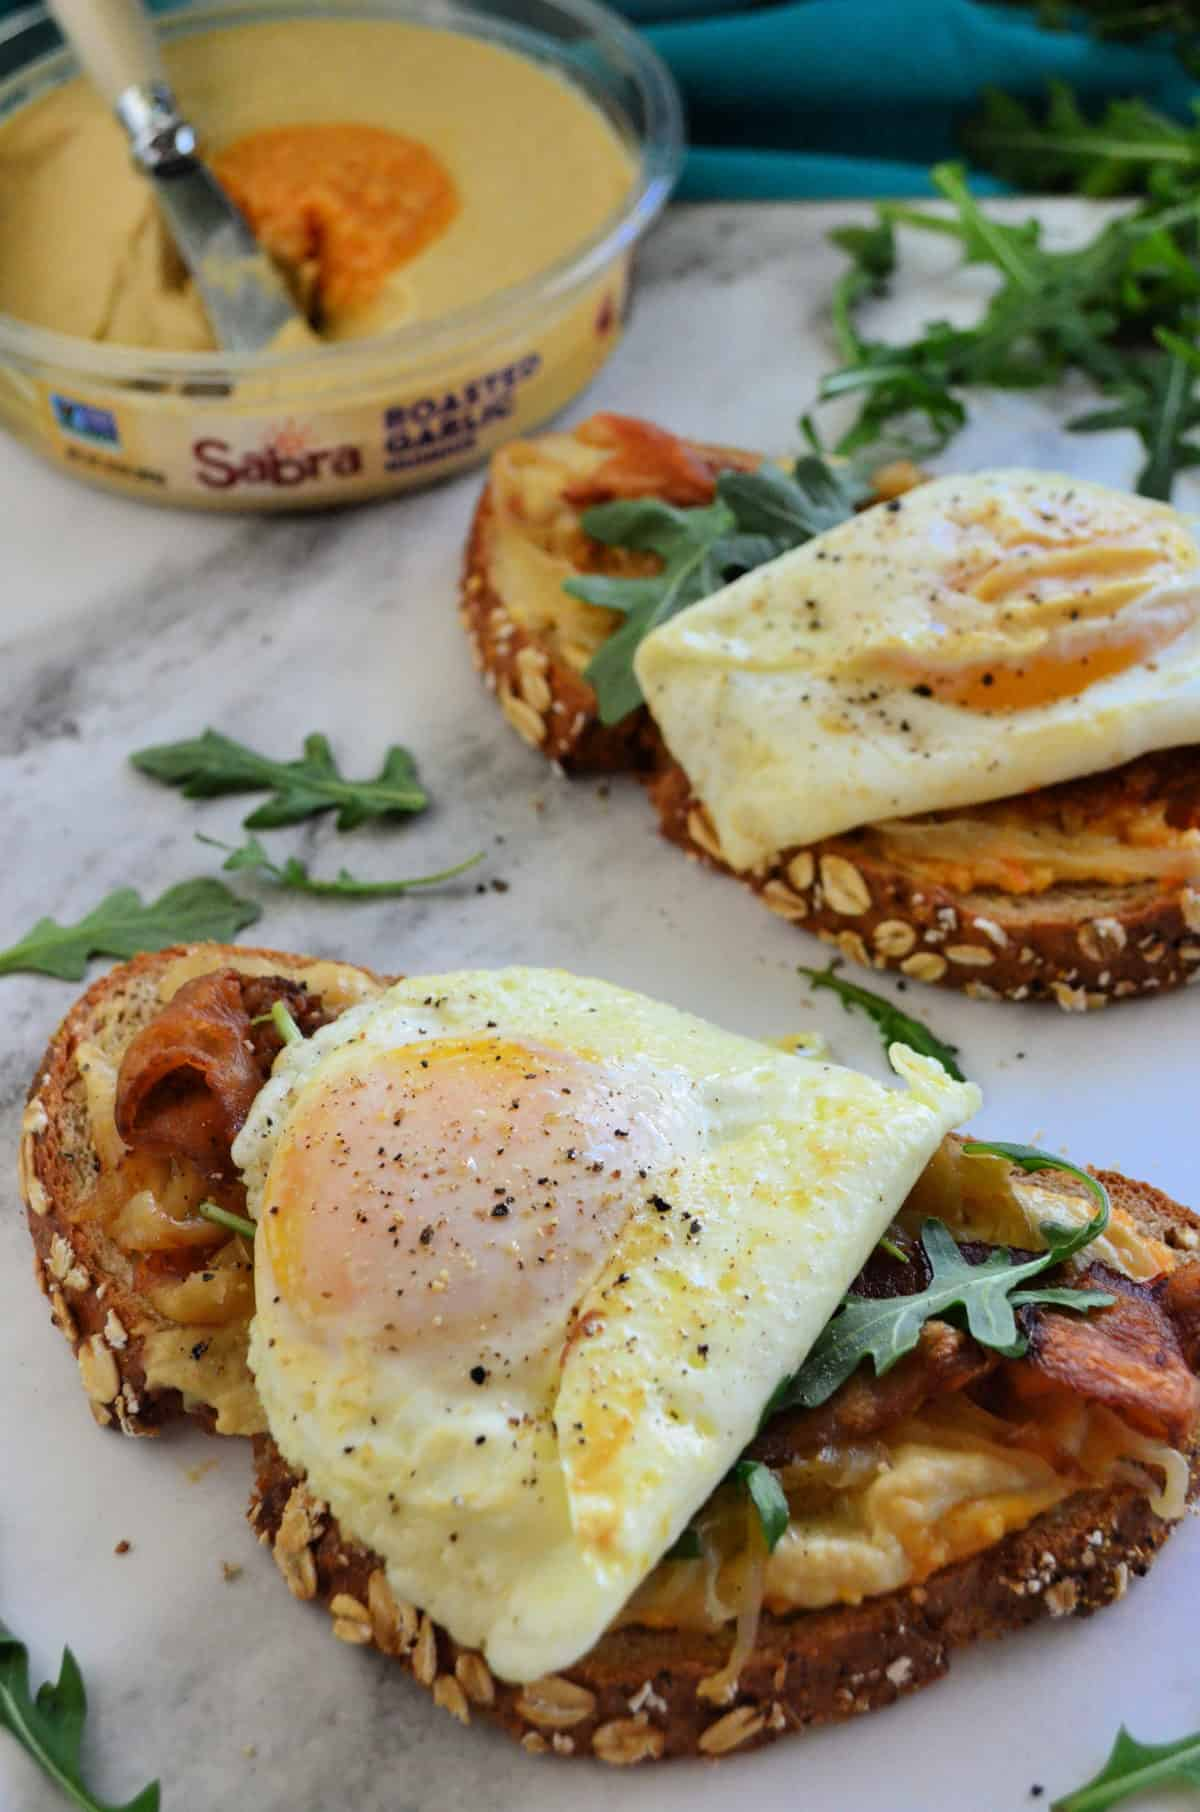 bread with hummus, bacon, over easy eggs oozing yolk, and arugula on platter with hummus behind.